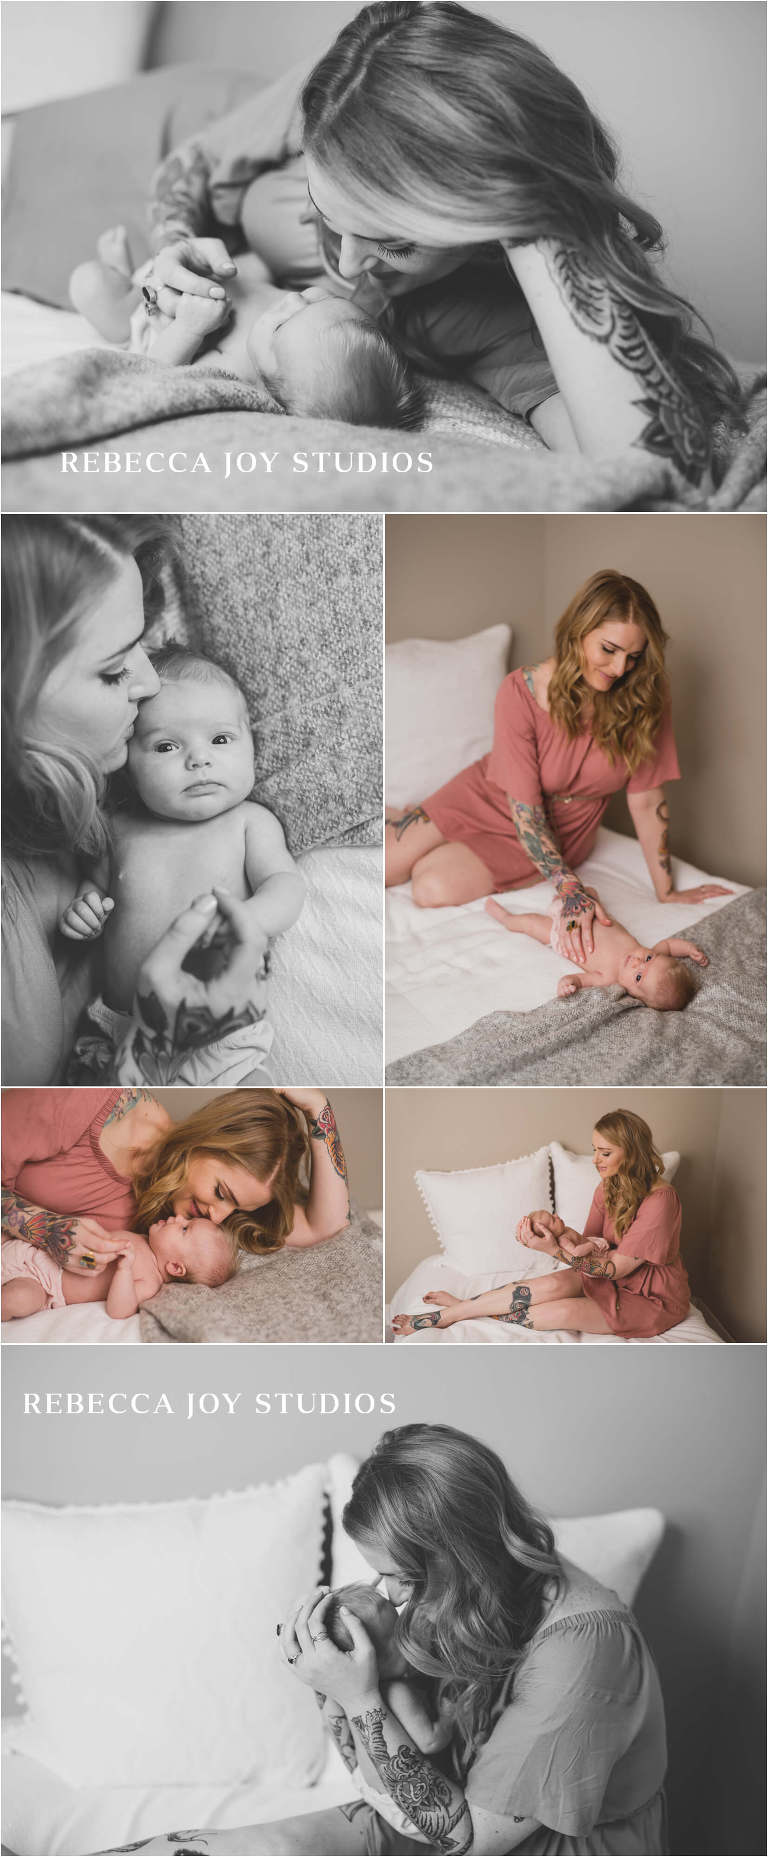 Mother kissing baby on the head in newborn photographer Victoria studio